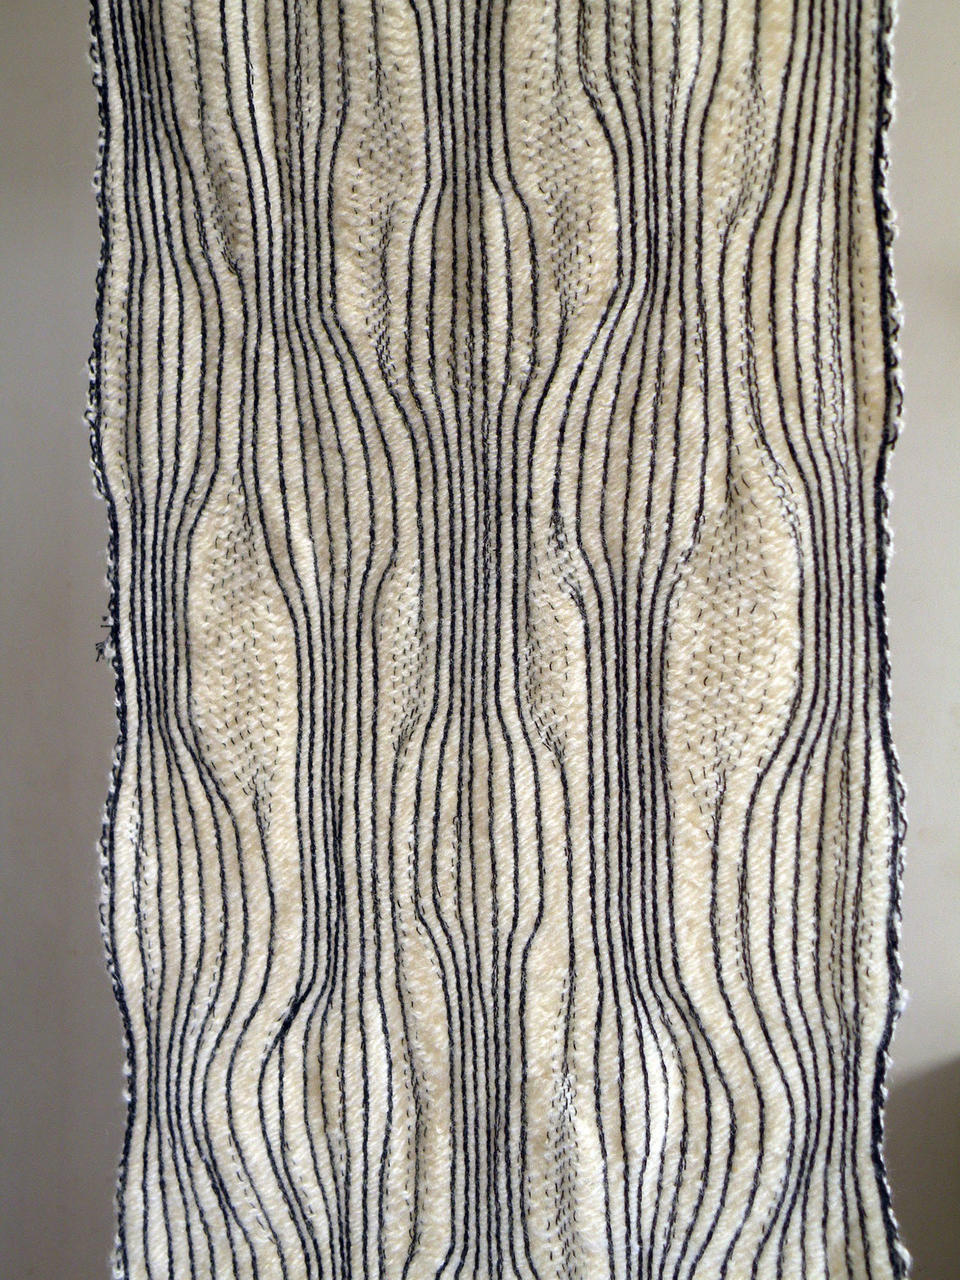 Woven by Juula Pärdi with 5-module RailReed